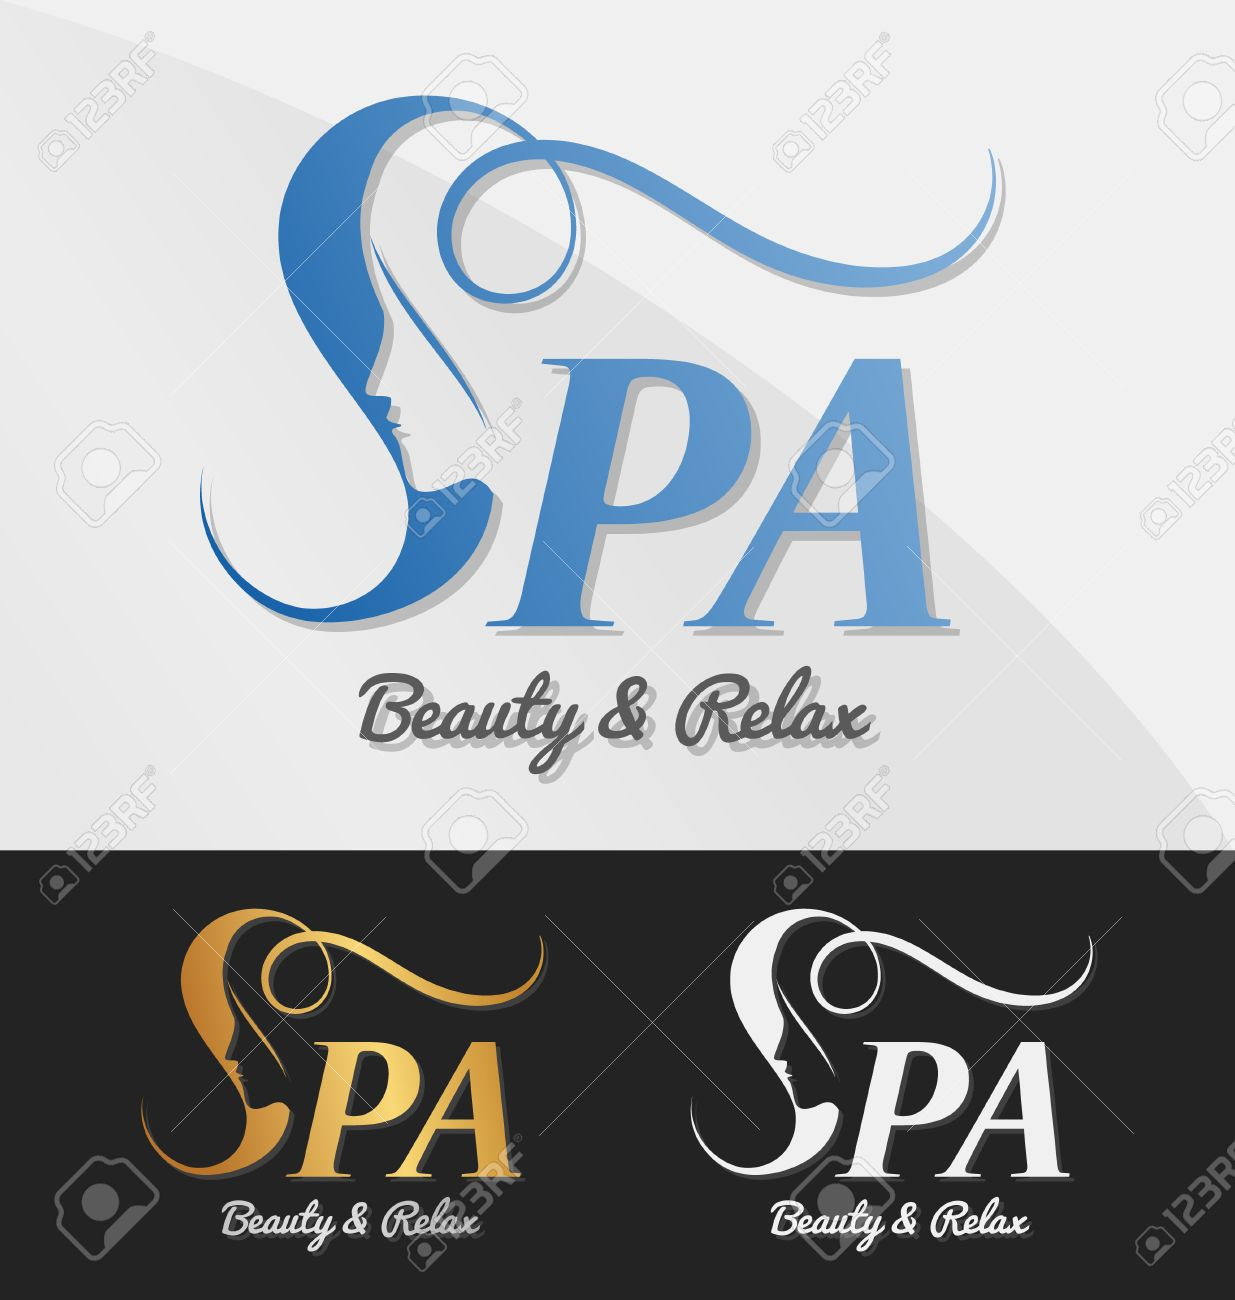 Beautiful female face in negative space on letter s logo design beautiful female face in negative space on letter s logo design suitable for spa thecheapjerseys Gallery